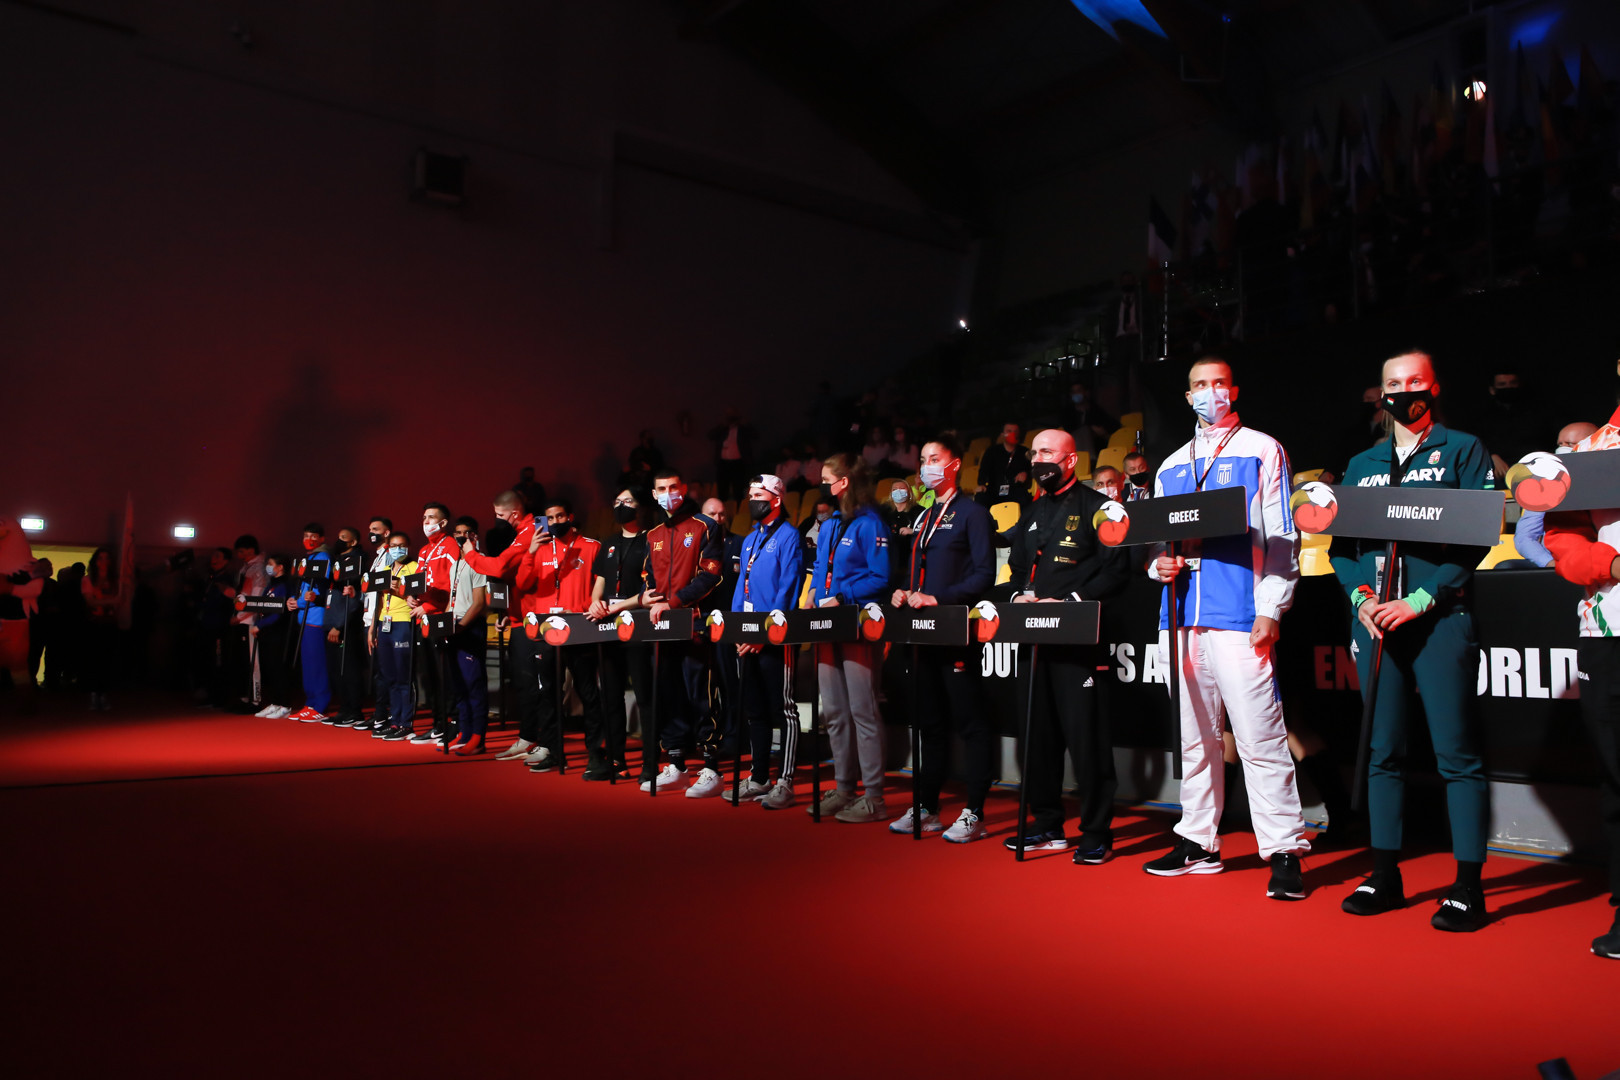 Competitors from 52 countries gather for opening of AIBA Youth World BoxingChampionships